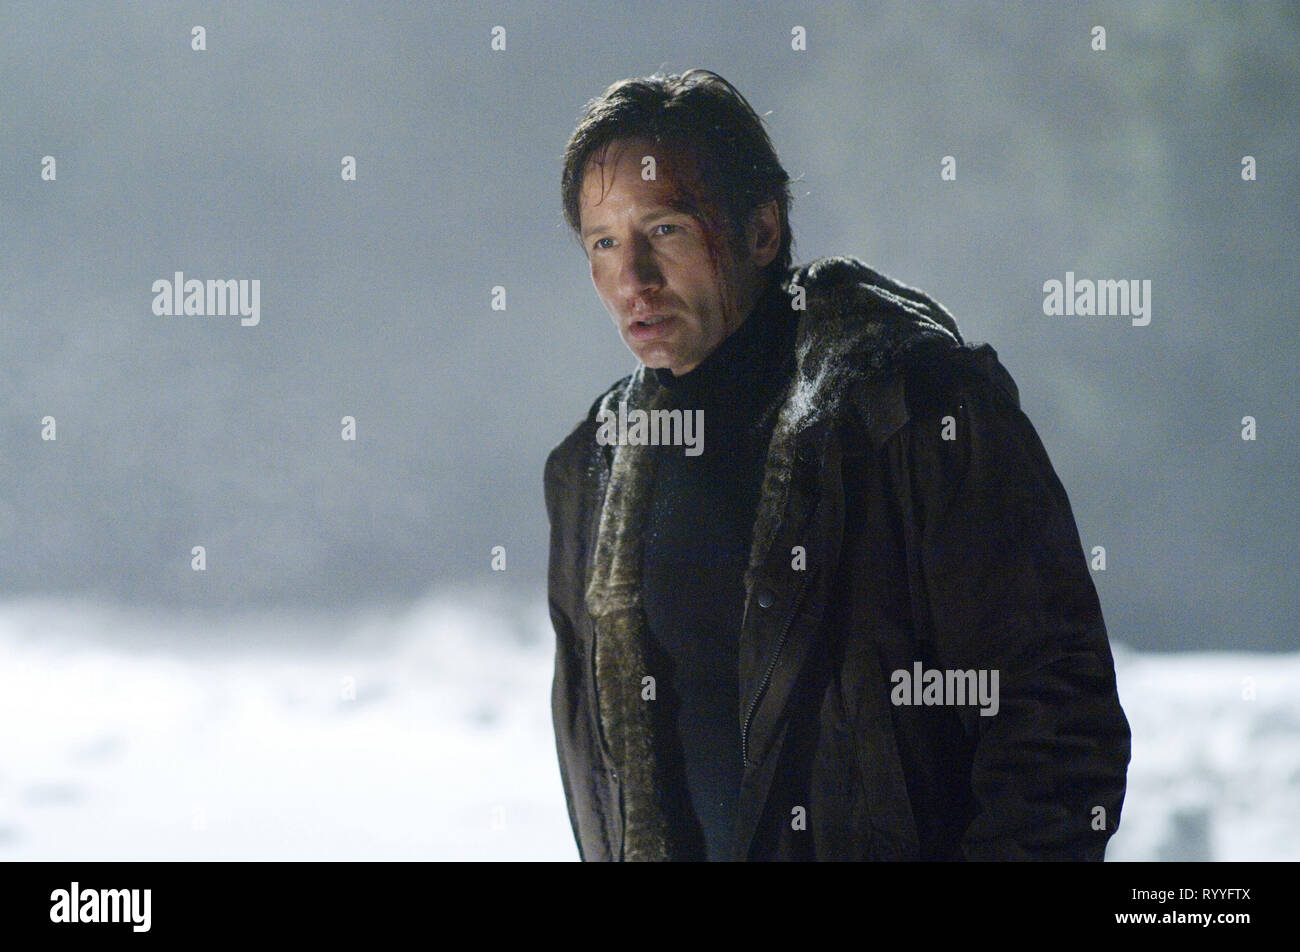 DAVID DUCHOVNY, THE X FILES: I WANT TO BELIEVE, 2008 - Stock Image